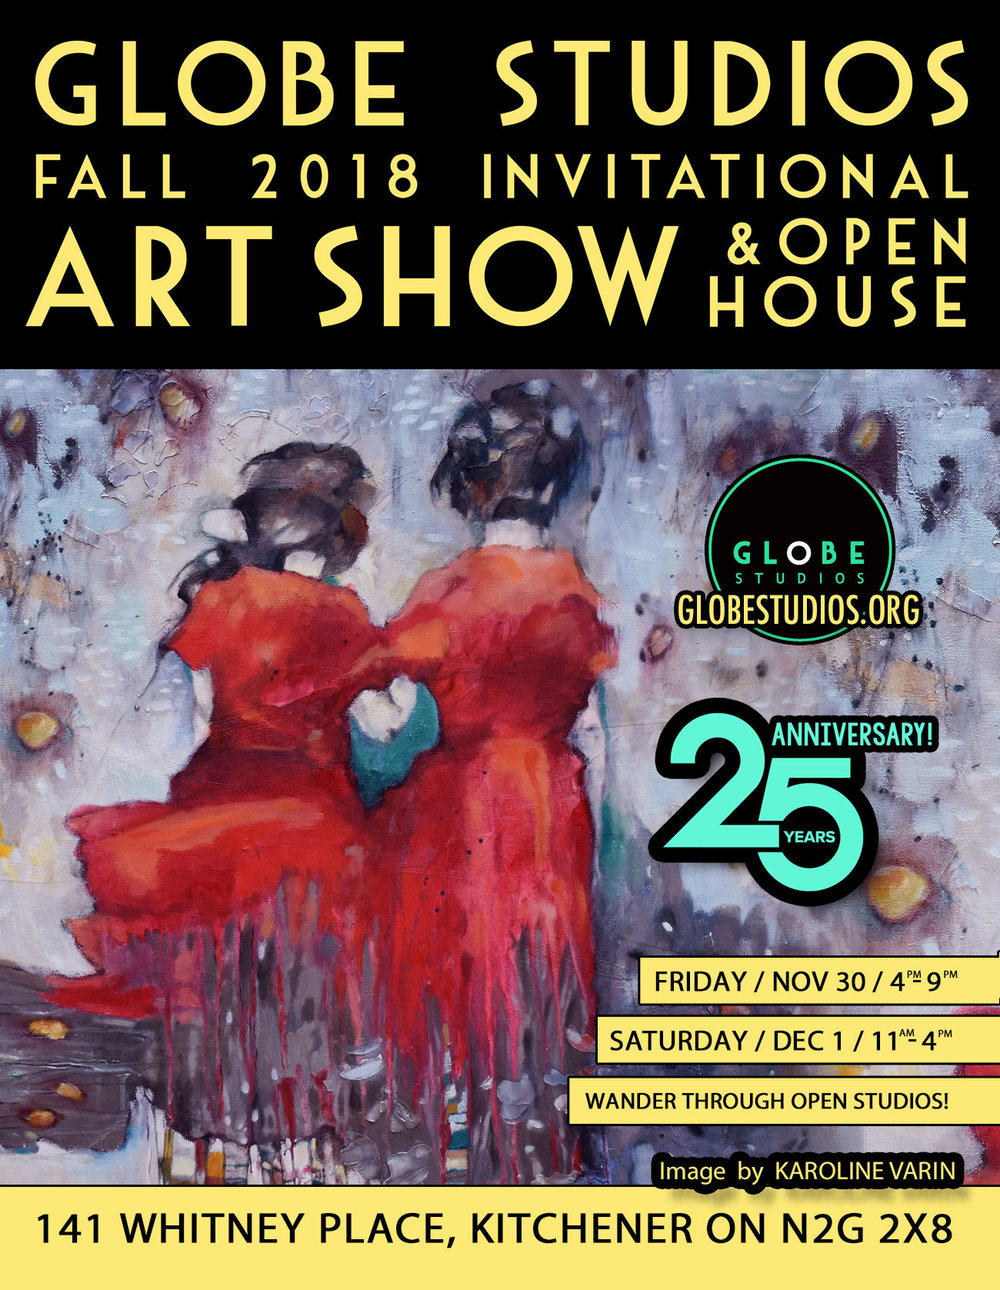 Globe Studios Fall 2018 Invitational Art Show and Open House - Friday, November 30, 2018    4:00 pm - 9:00 pmSaturday, December 1, 2018   11:00 am - 4:00 pm141 Whitney Place, Kitchener ON